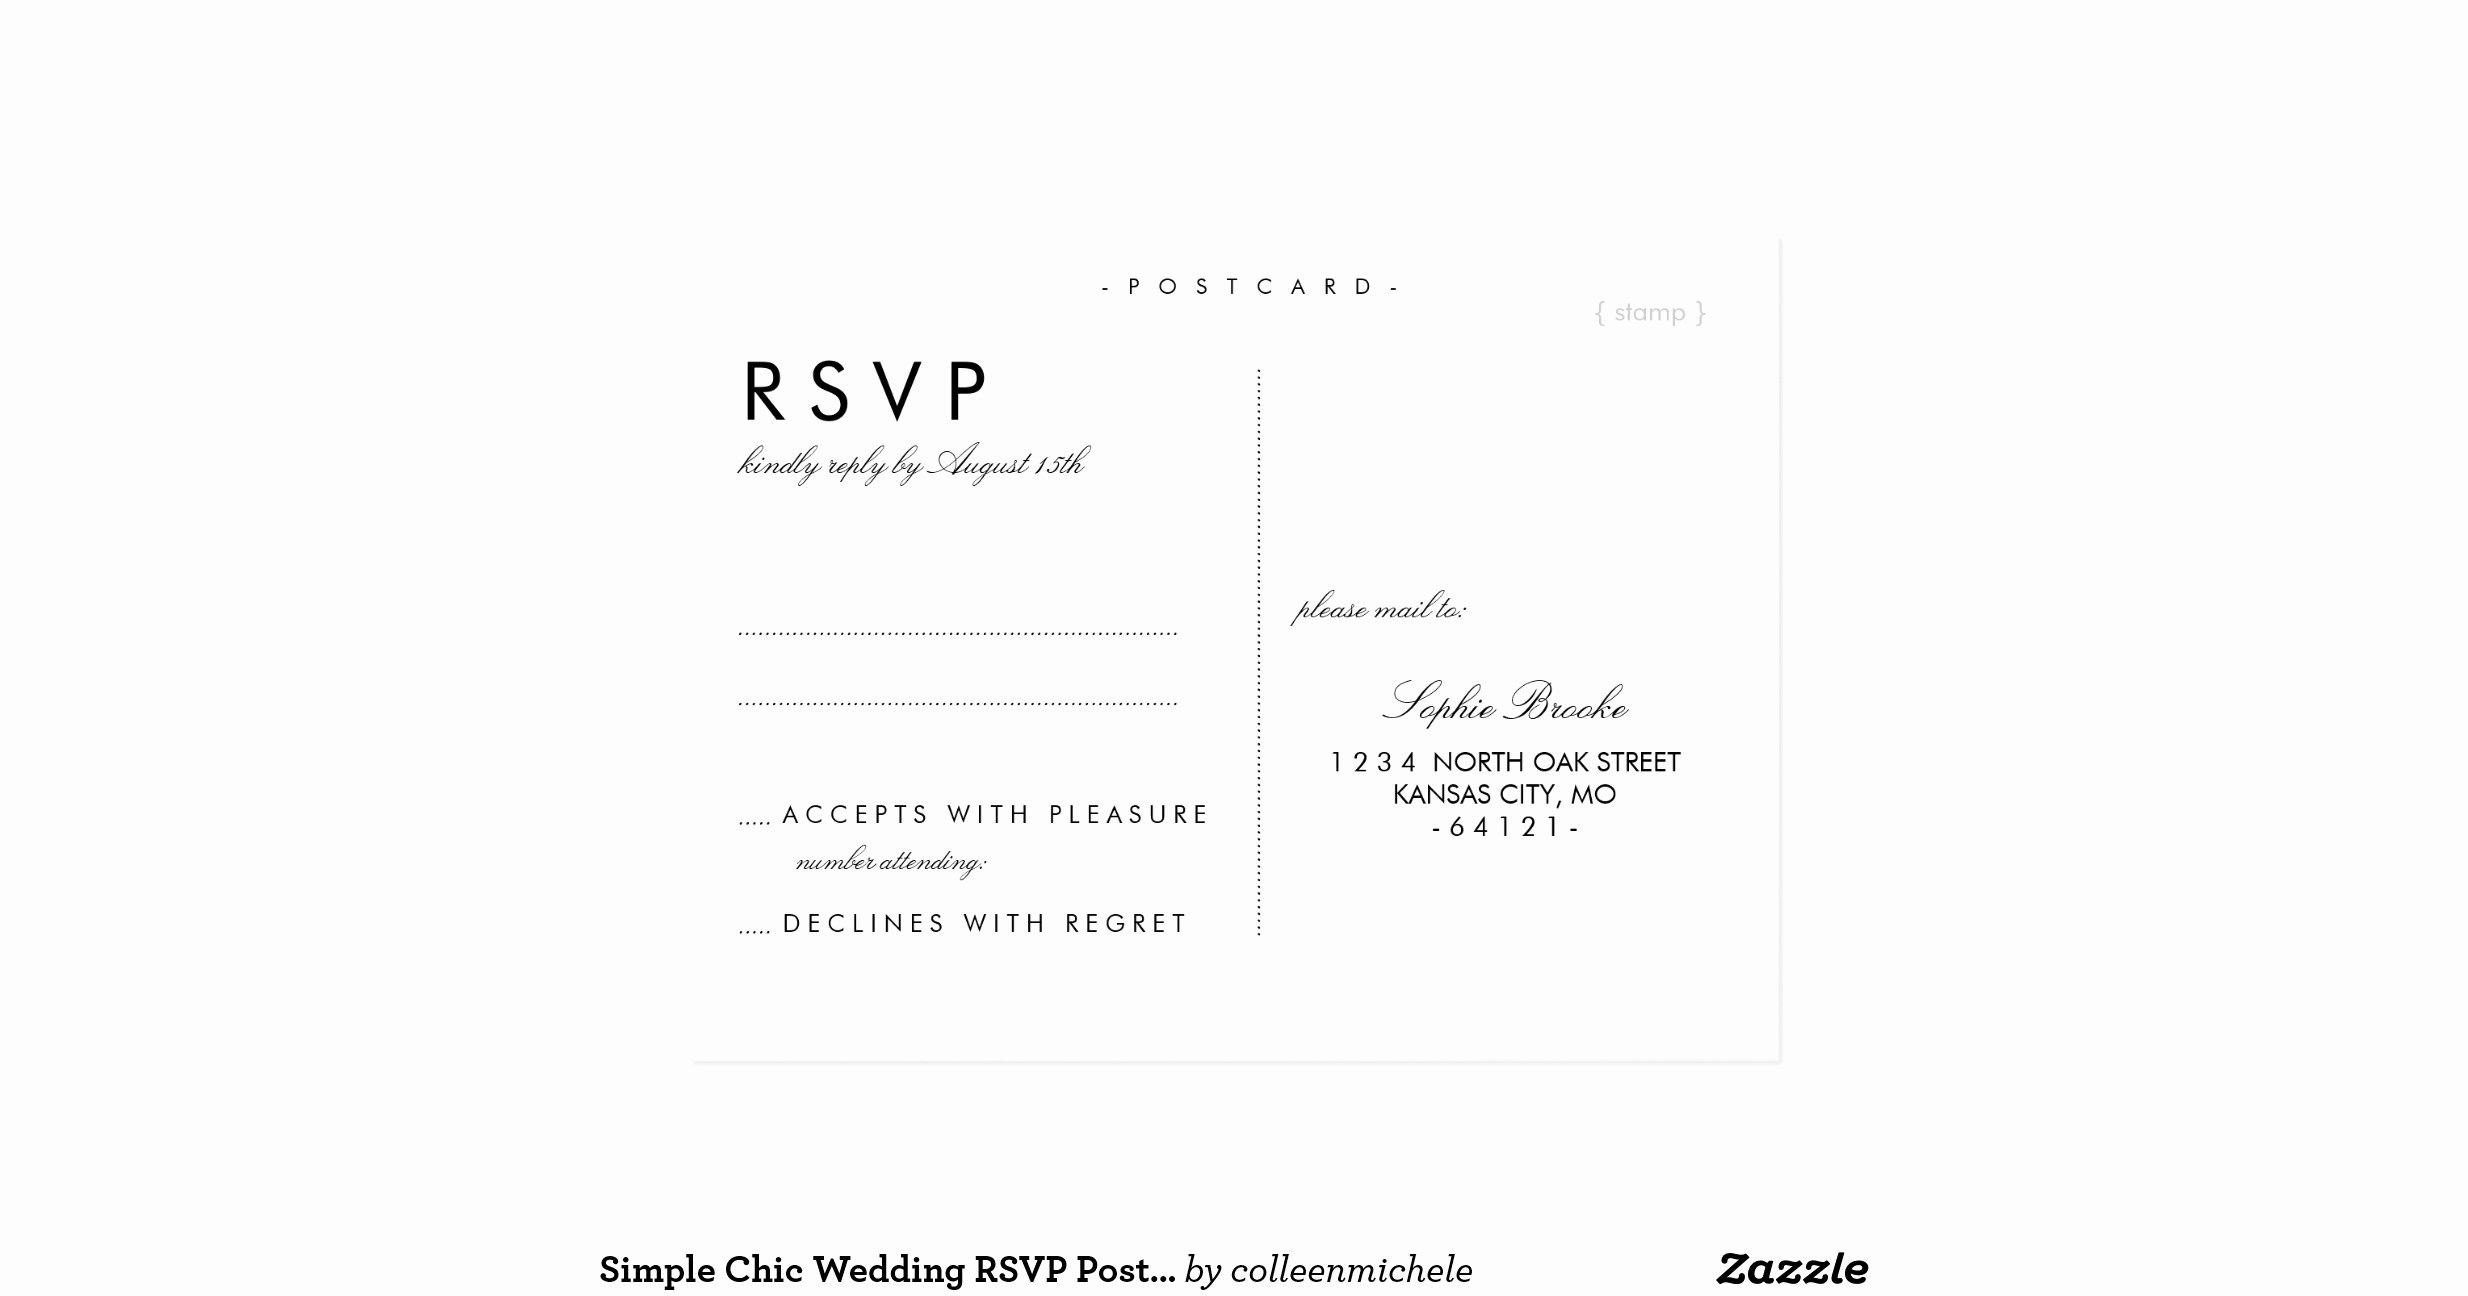 Wedding Rsvp Postcard Template Lovely Simple Chic Wedding Rsvp Postcard Template